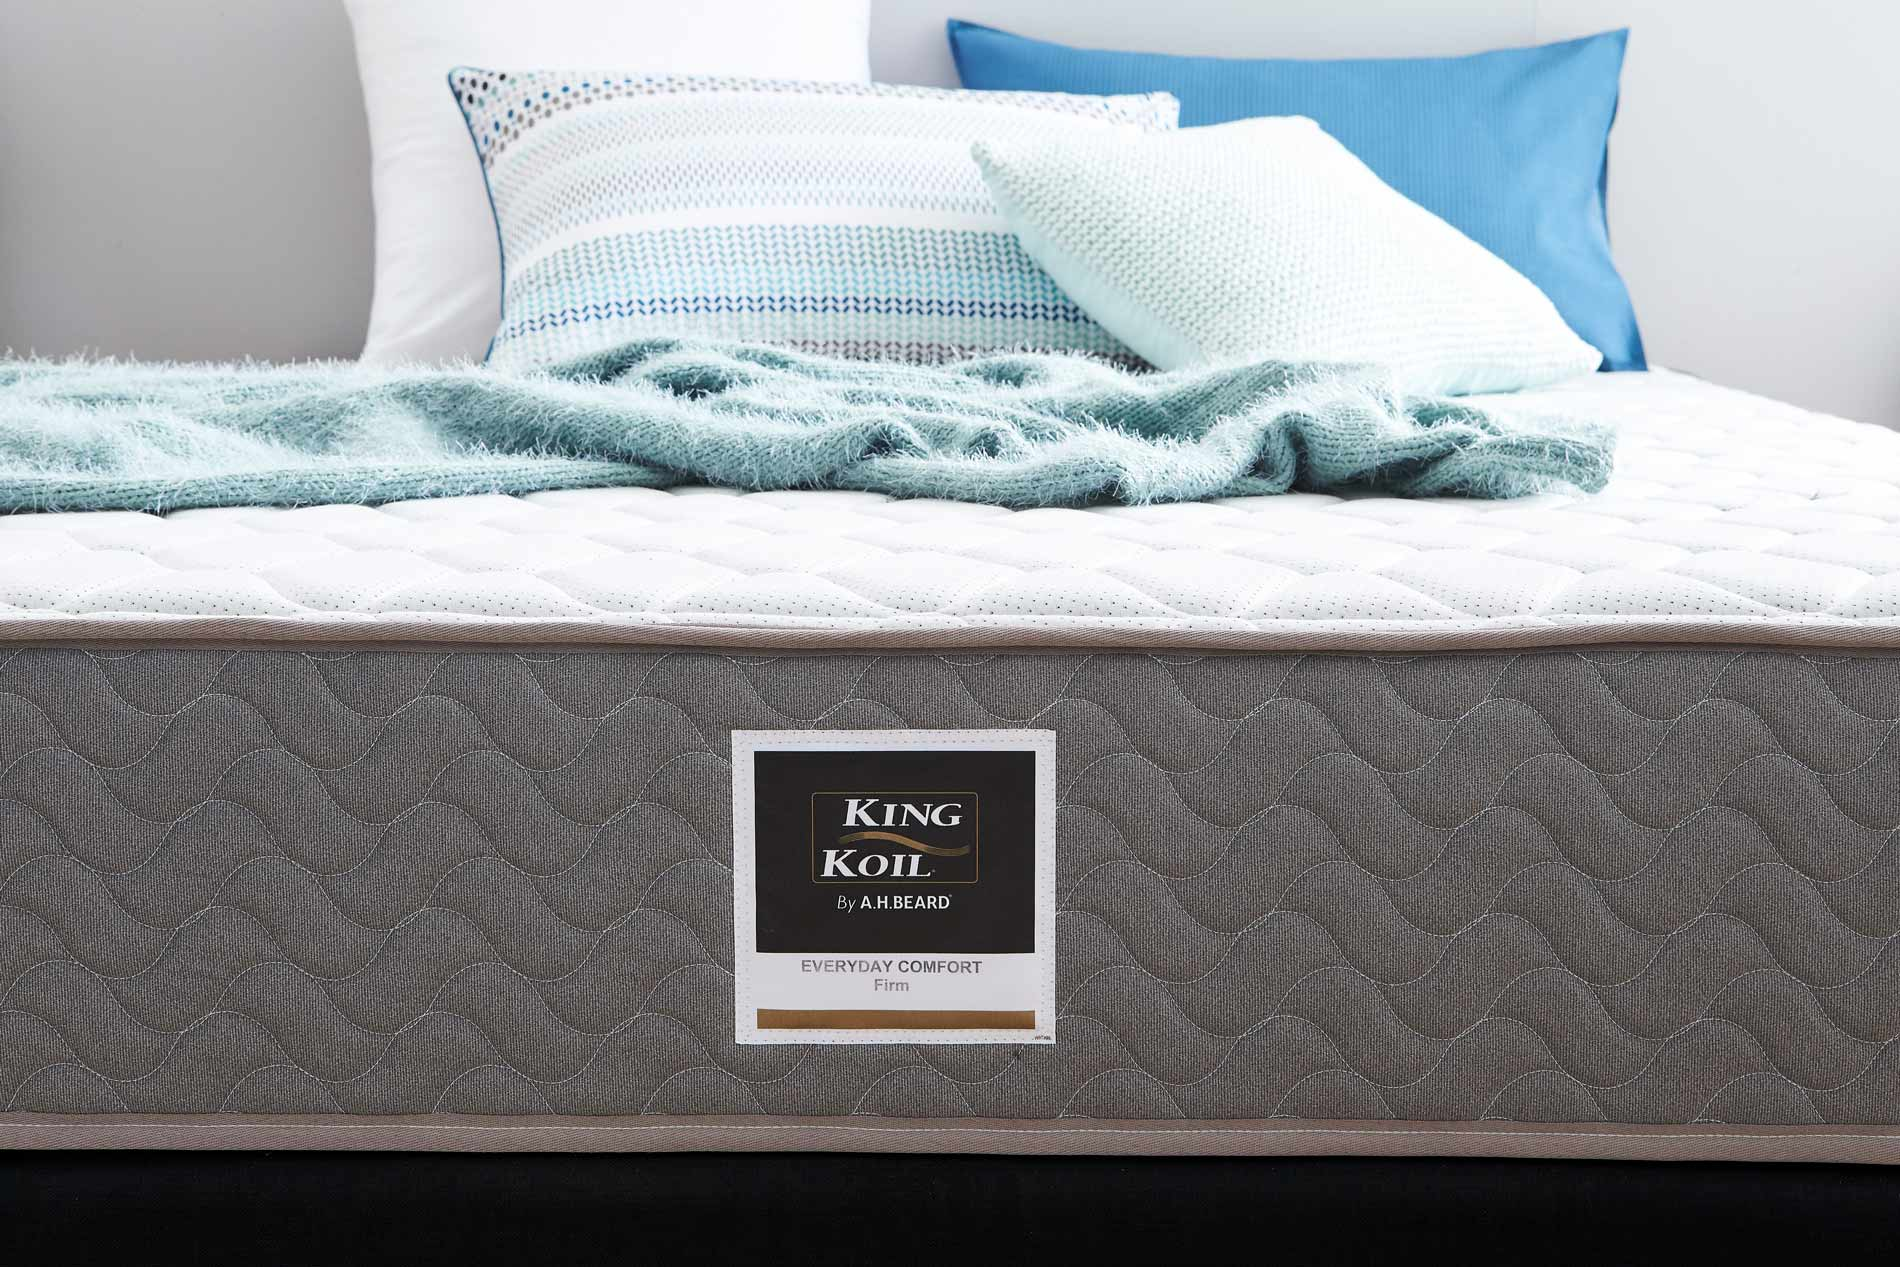 King koil everyday comfort mattress firm beds mattresses forty winks King mattress